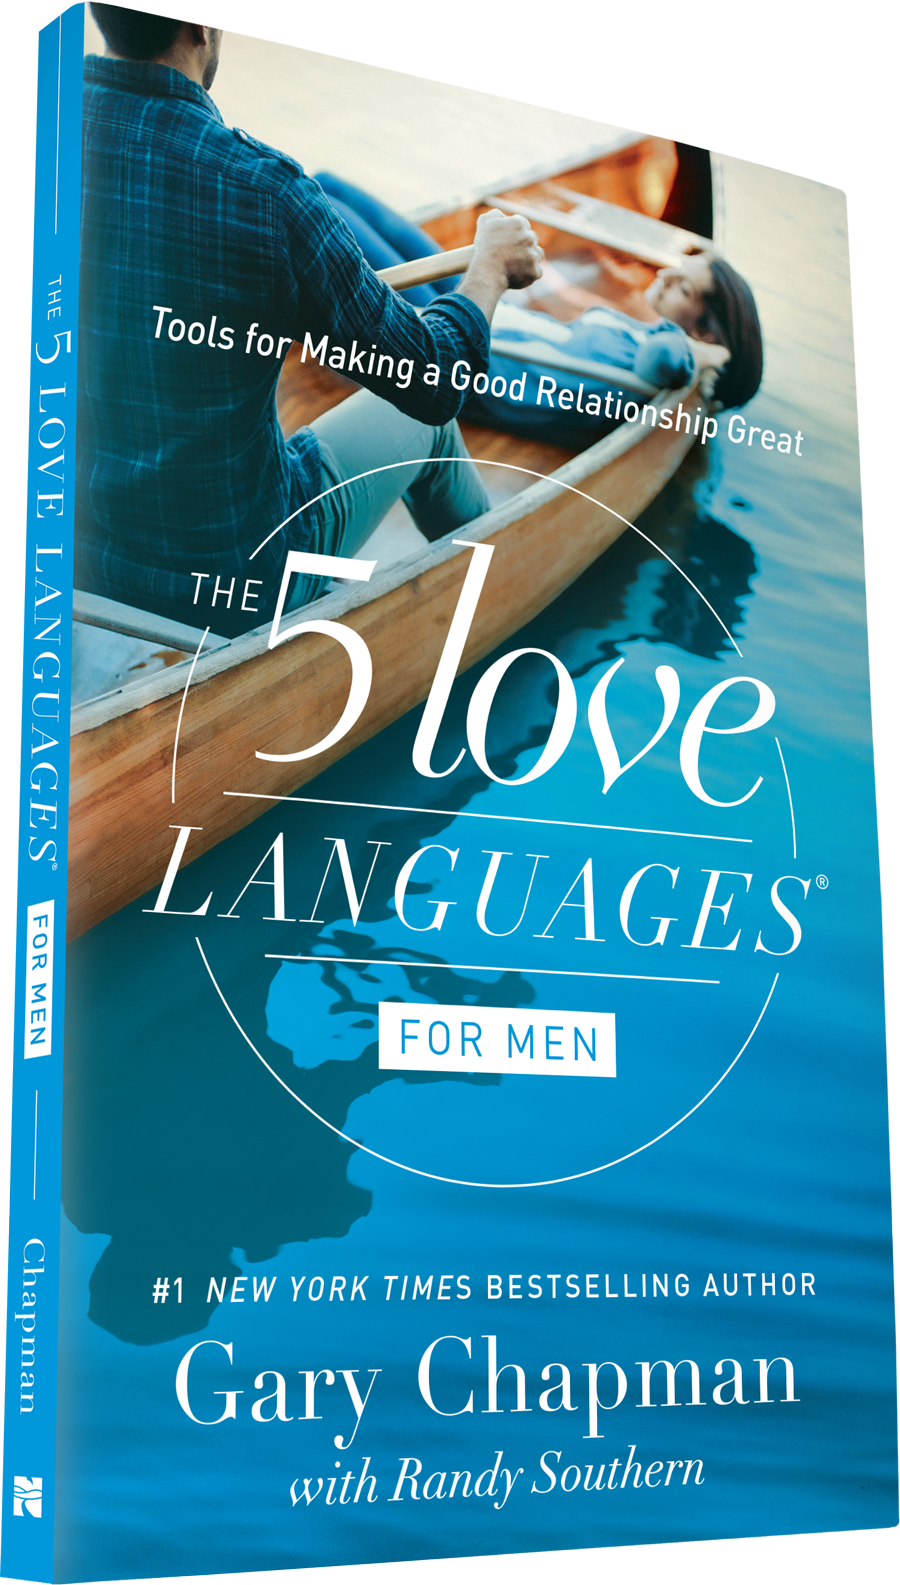 5 love languages for singles quiz